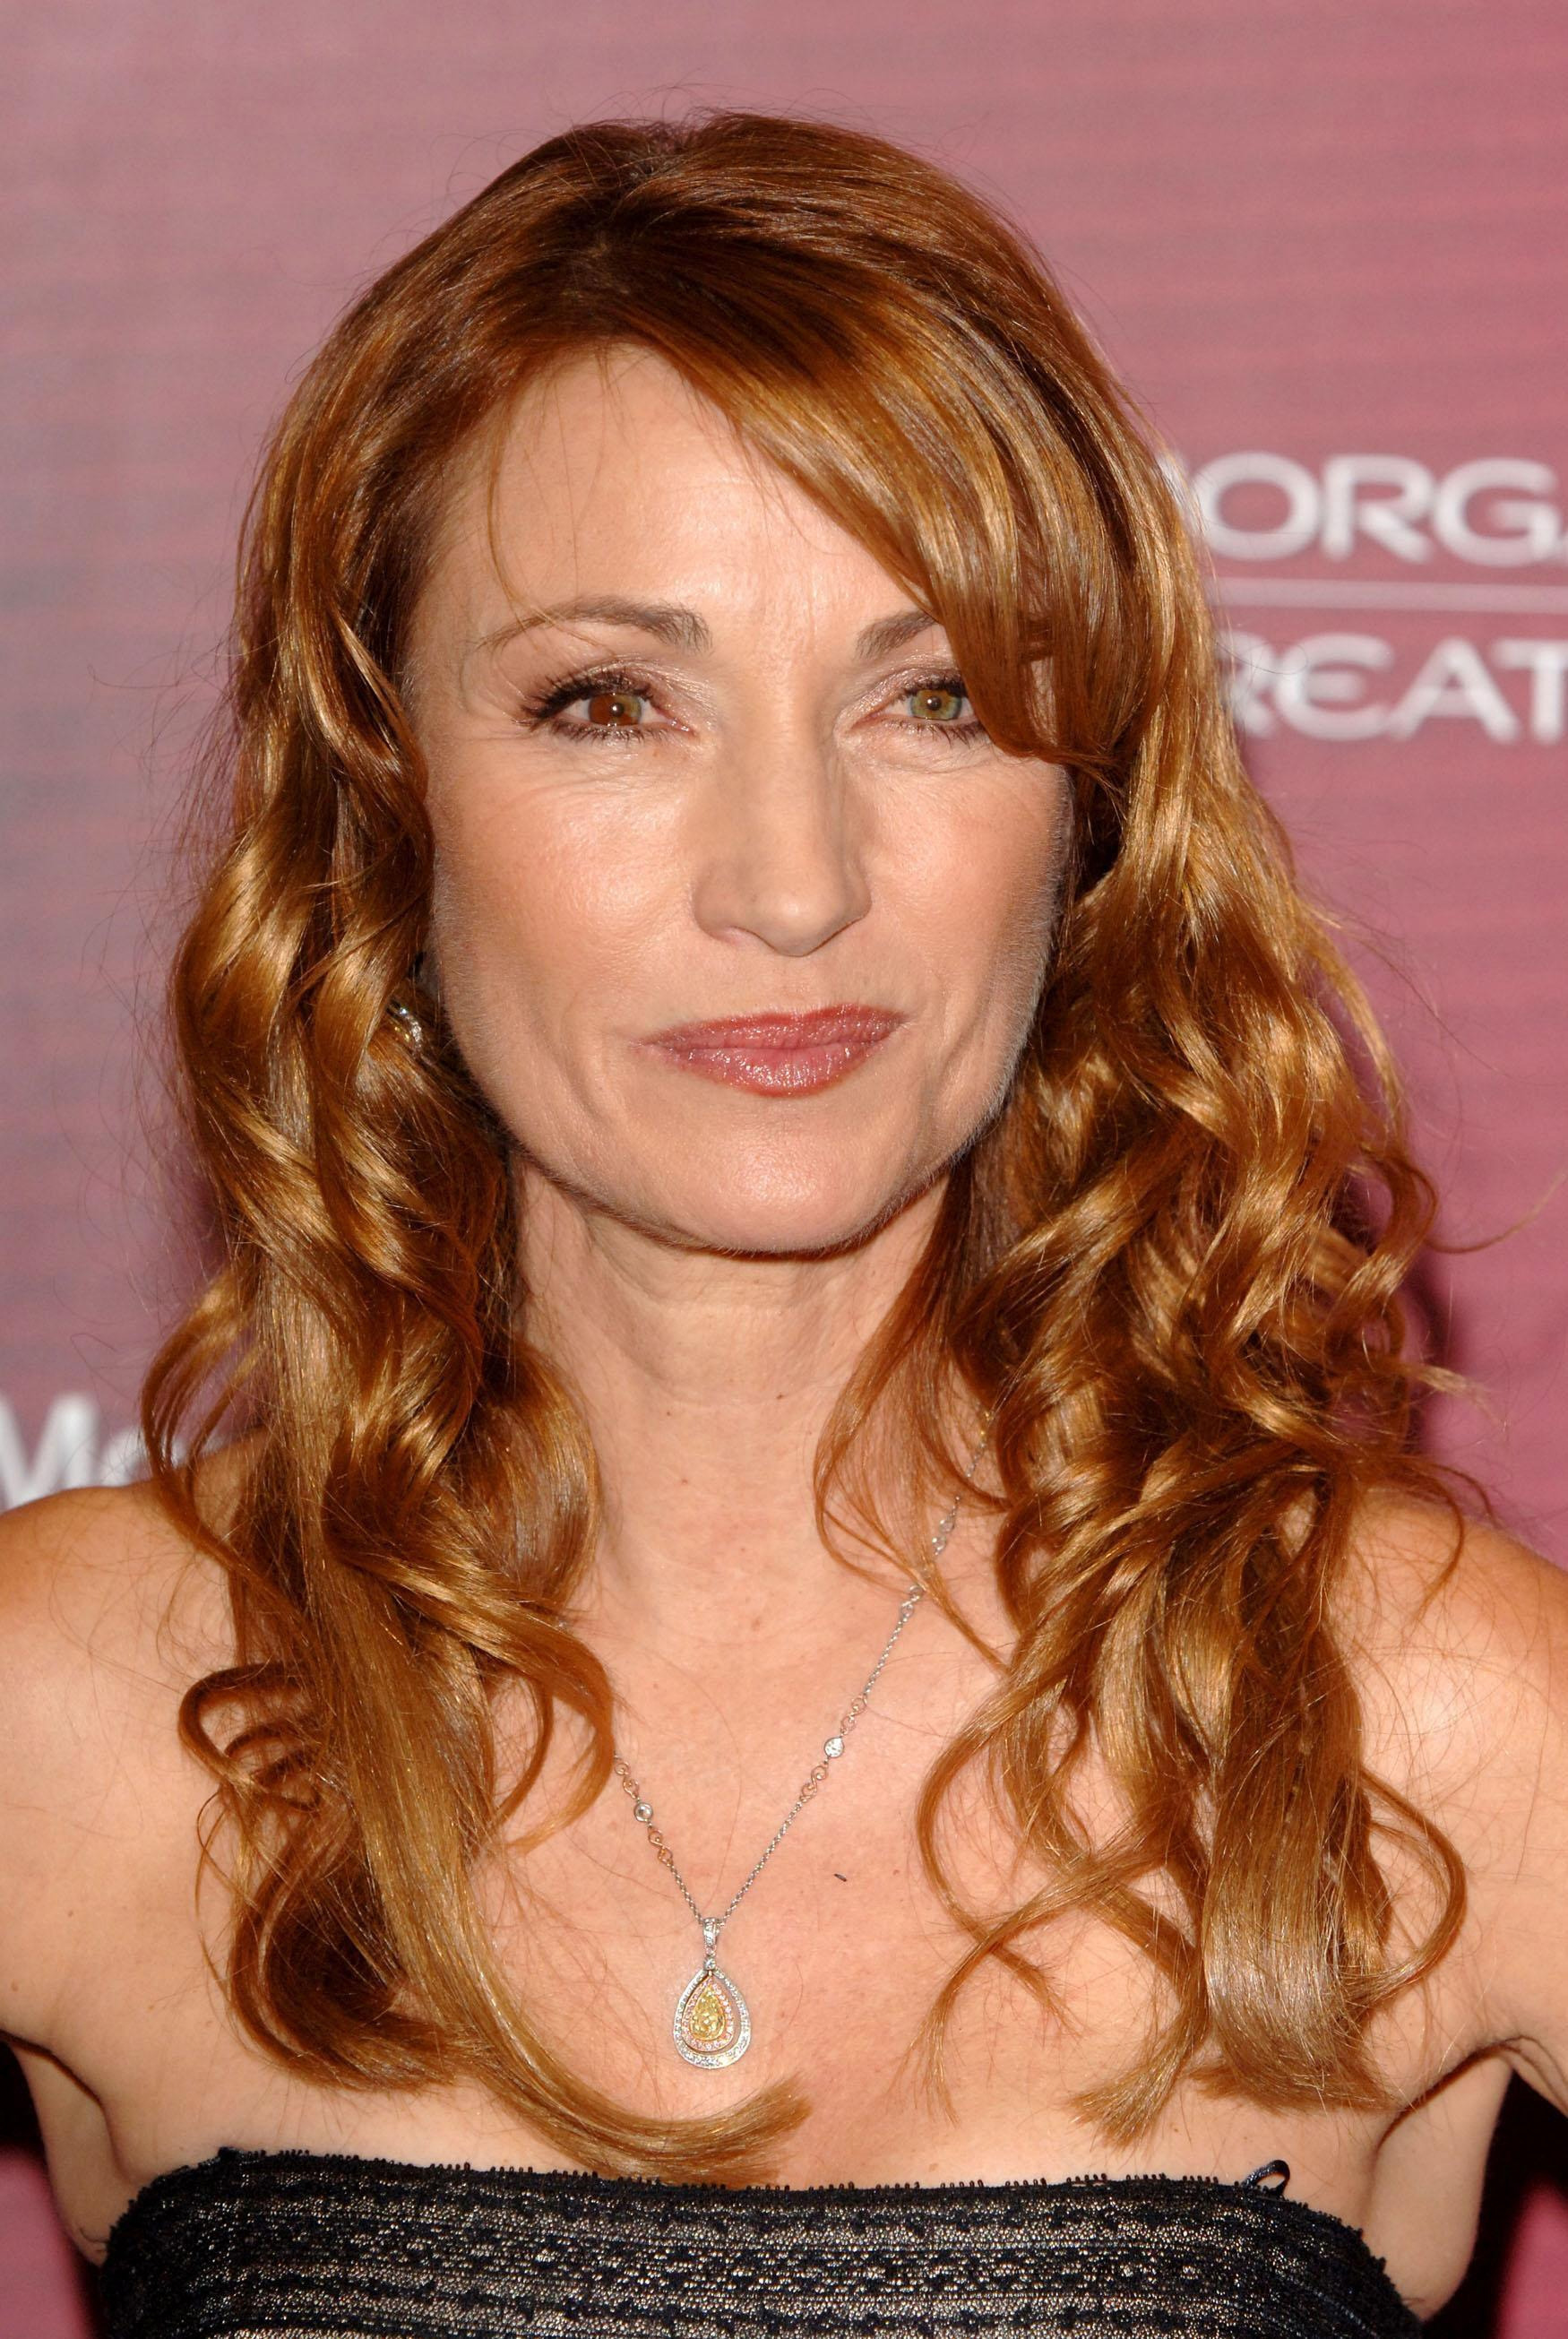 Jane Seymour returns to the UK after mum's death